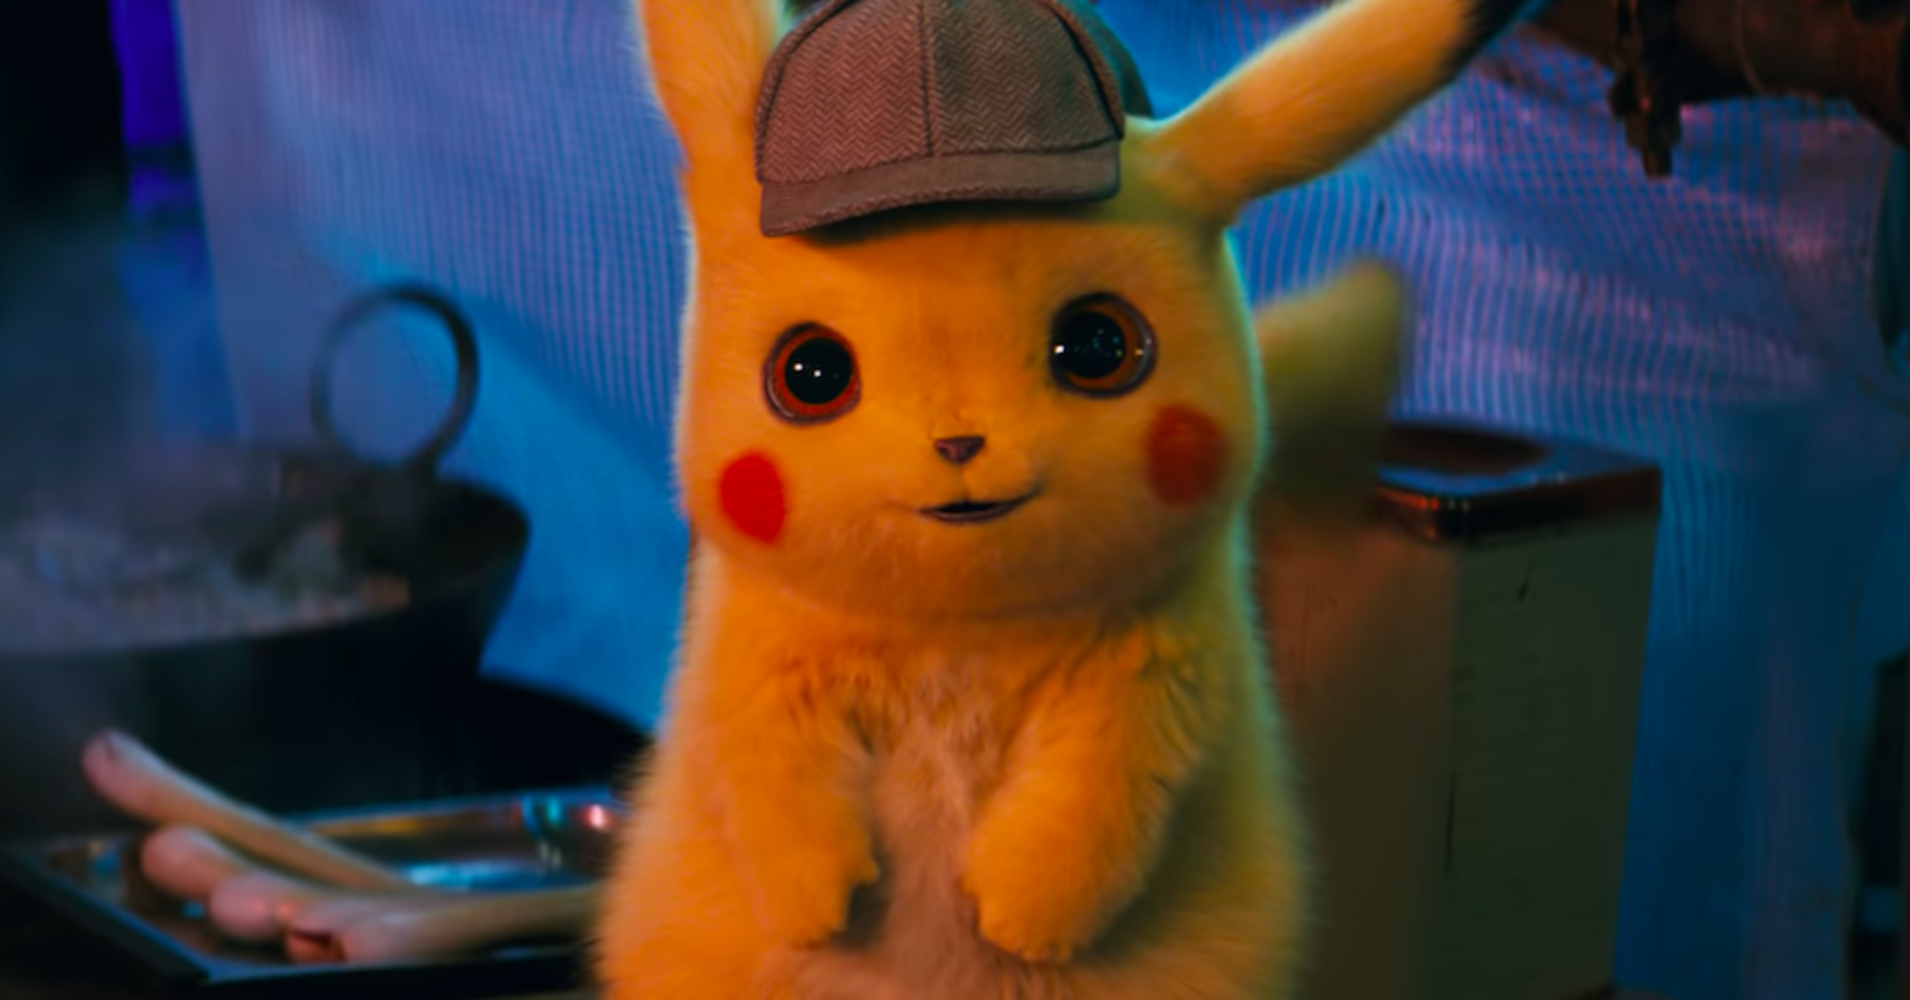 'Detective Pikachu' Trailer Introduces Ryan Reynolds As